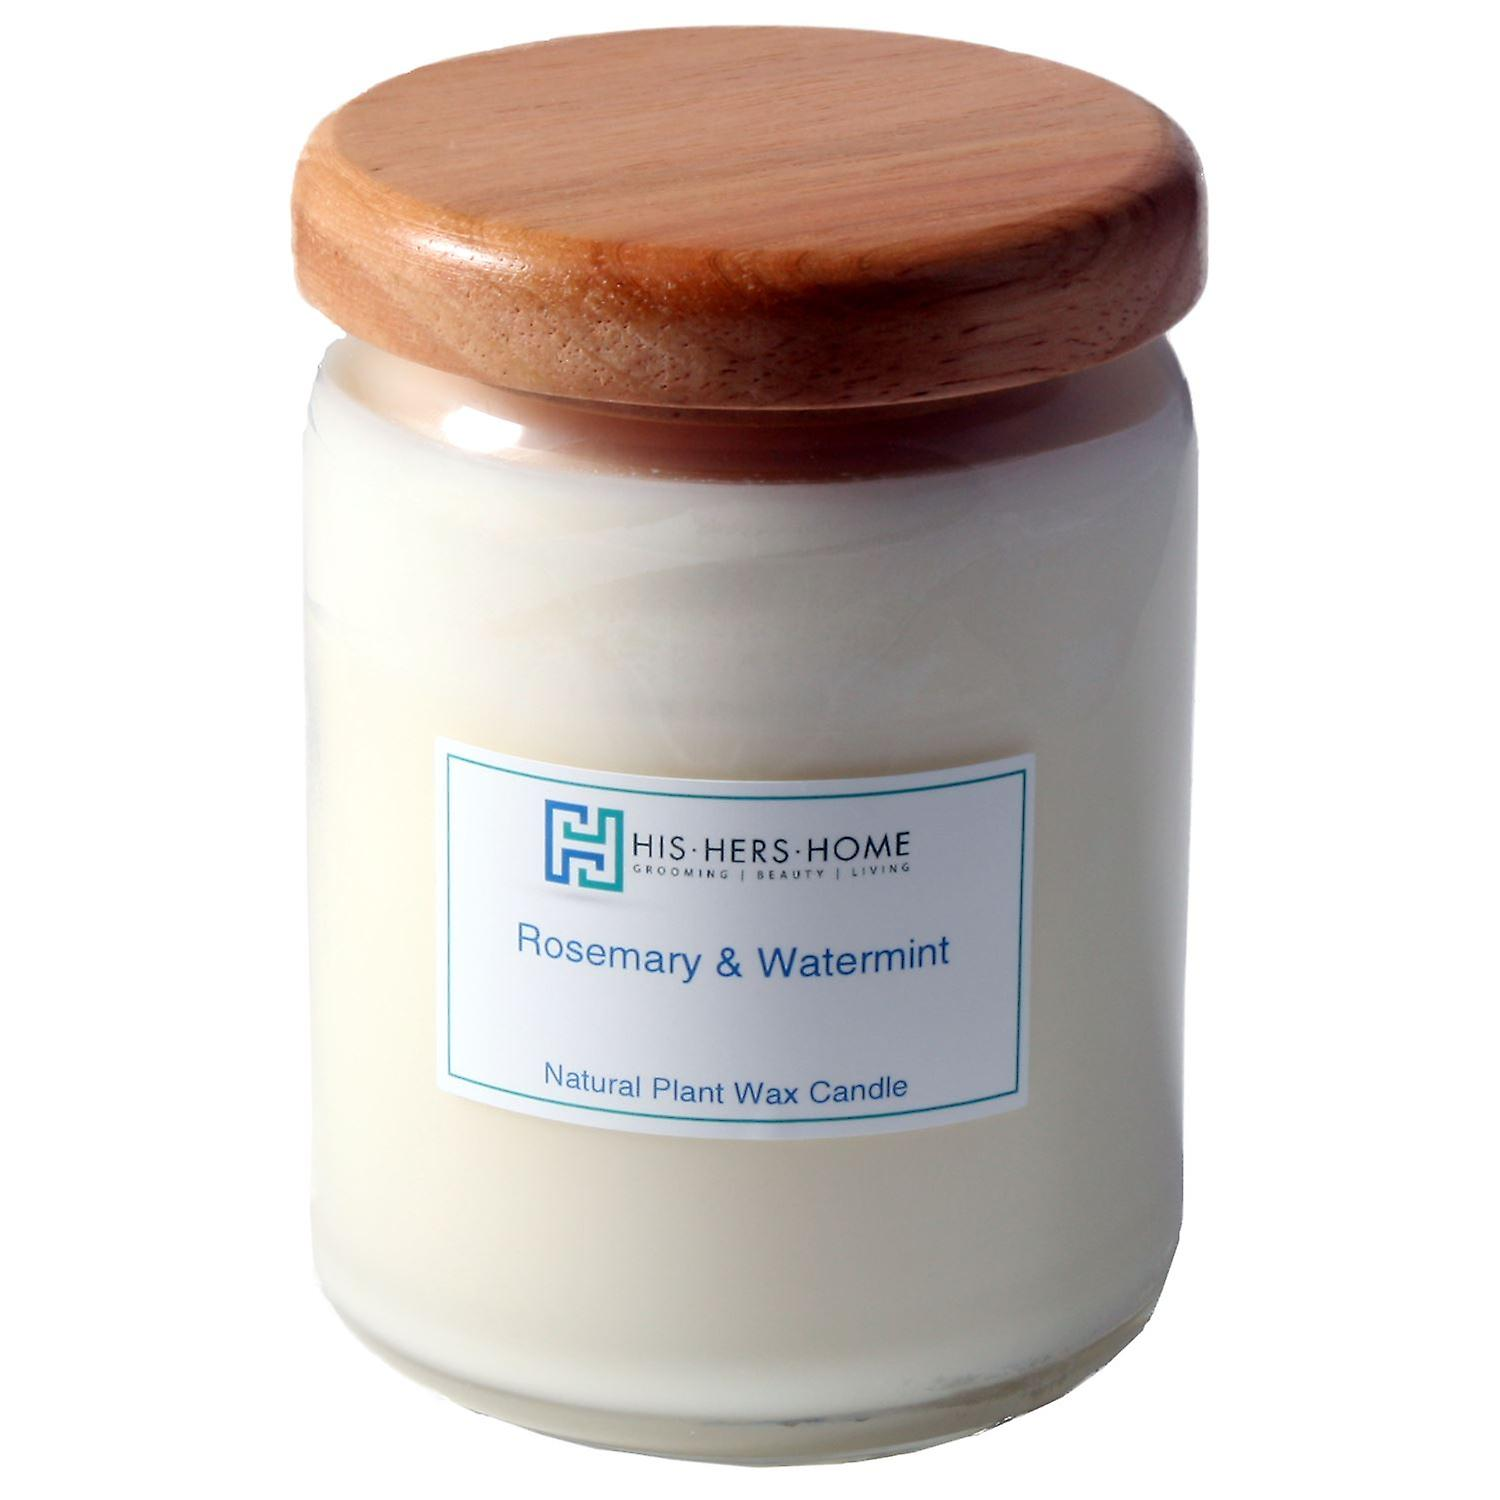 HisHersHome Natural Plant Wax Large Large Candle - Roasemary & Watermint